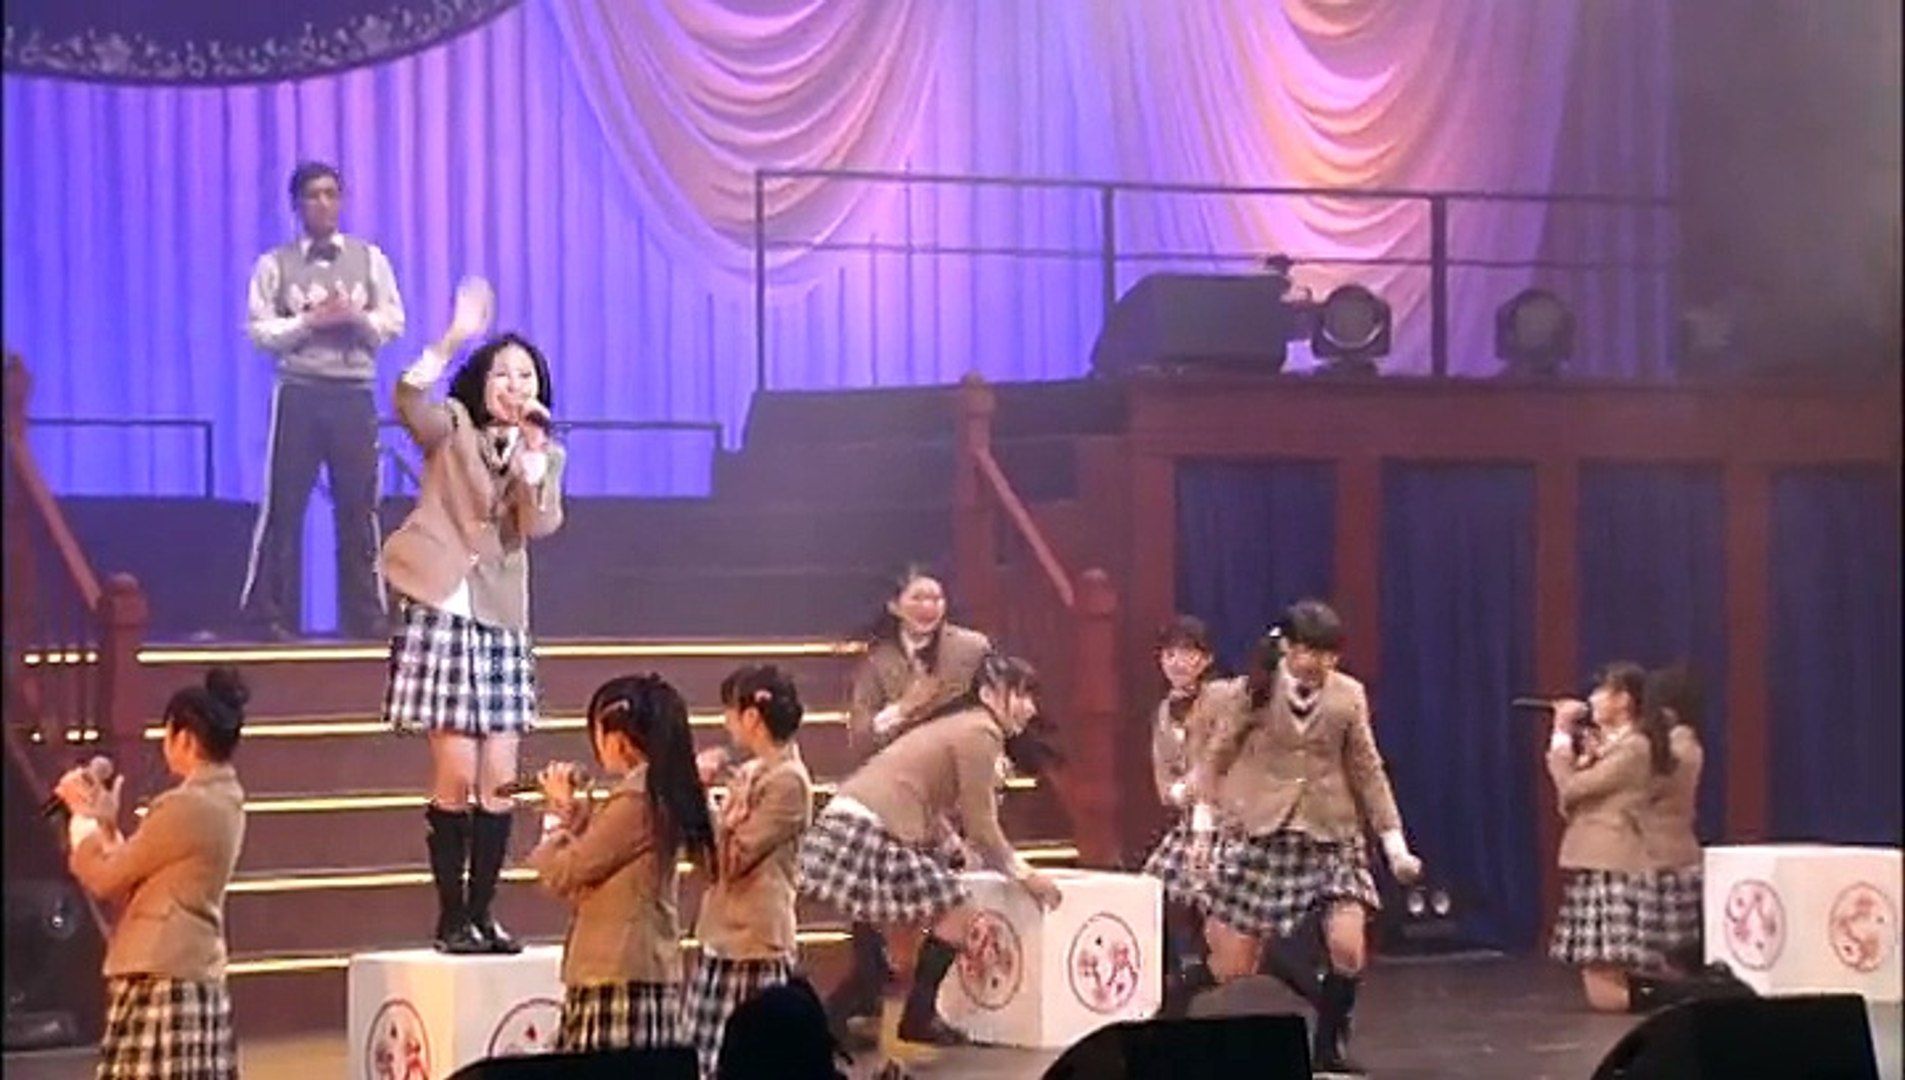 Sakura Gakuin さくら学院 - The Road to Graduation FINAL 2013 ~2013 Nendo Sotsugyo~ [Part 1 of 3]